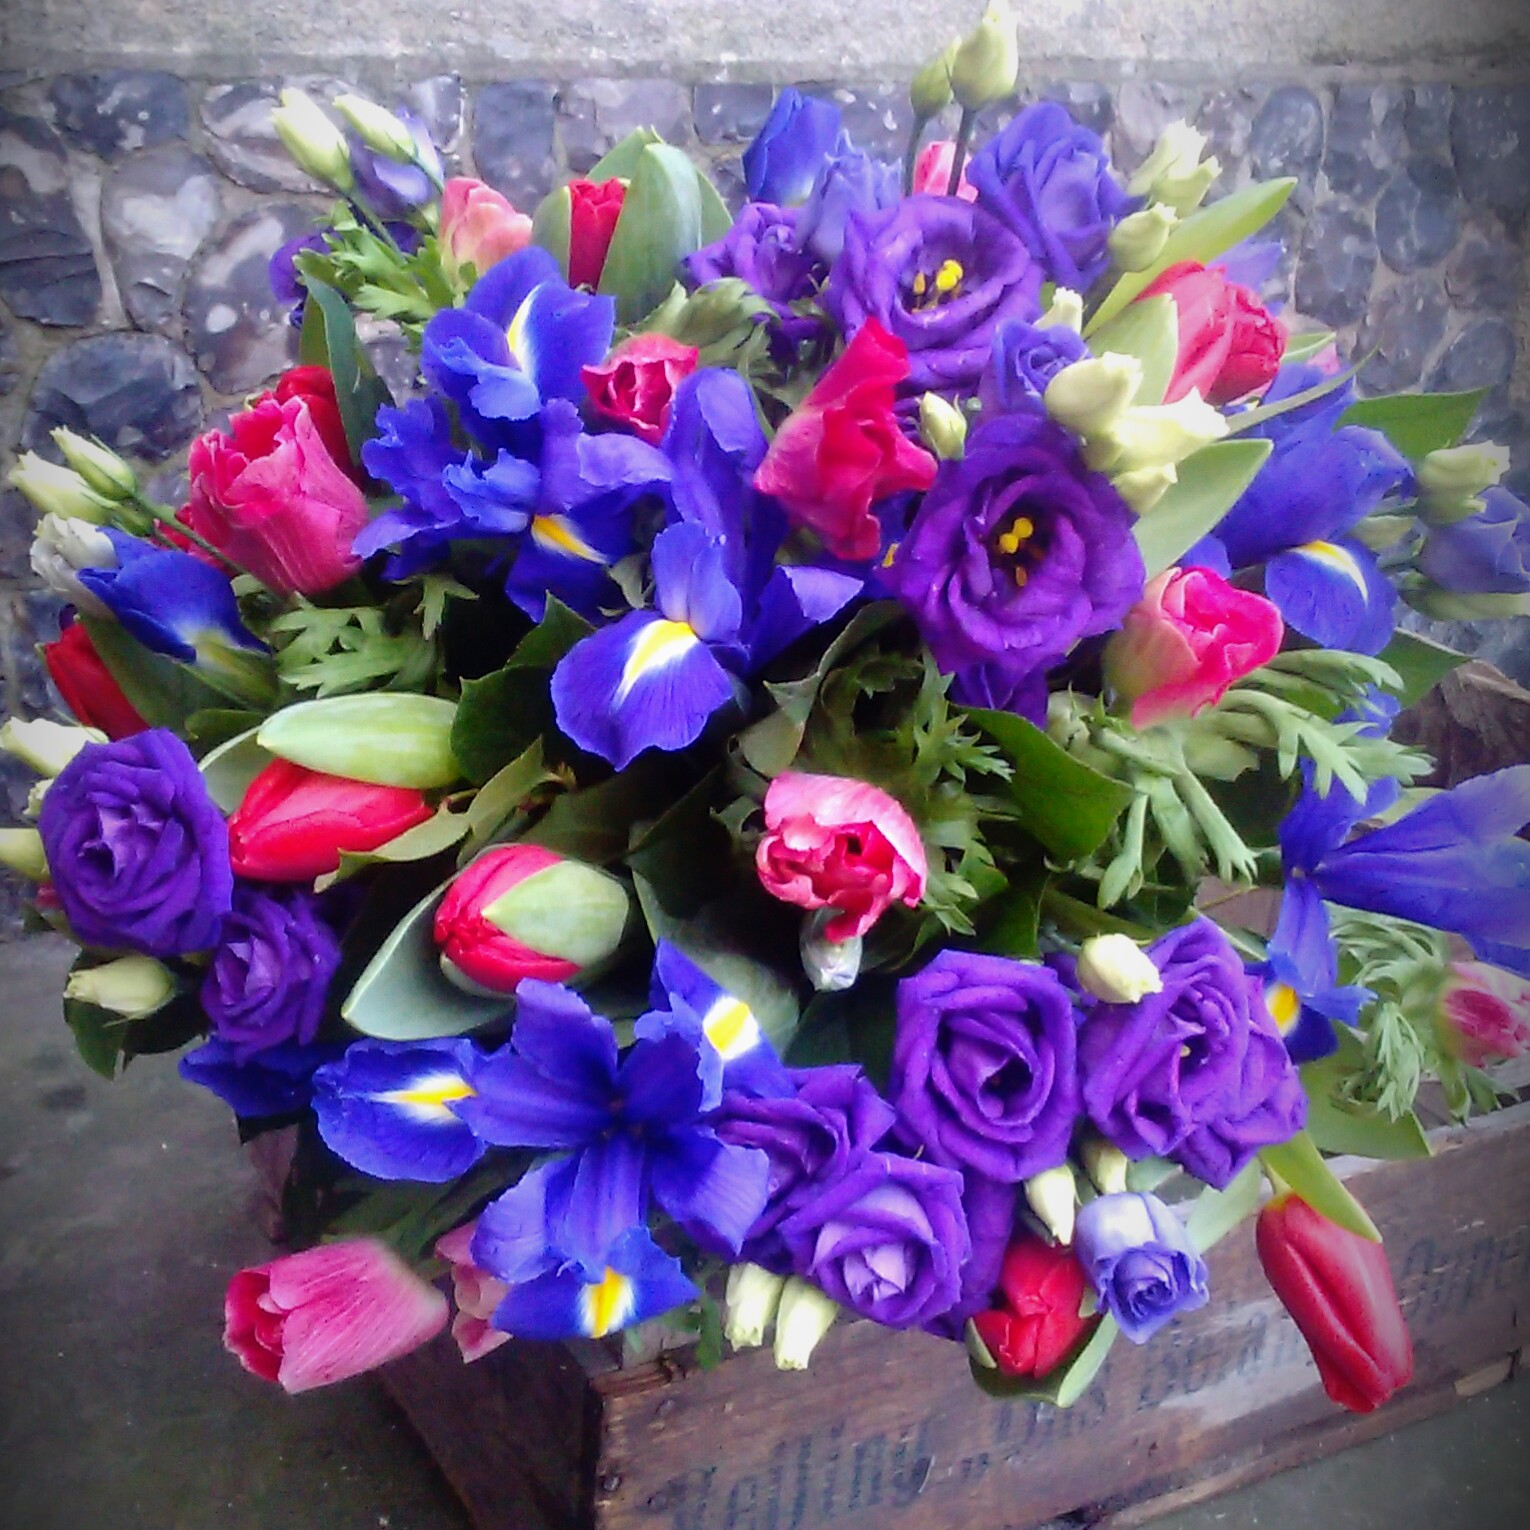 The flower stand specialising in flowers brighton funeral the flower stand specialising in flowers brighton funeral tributes worthing hand tied flowers brighton corporate flowers palmeira square hand tied izmirmasajfo